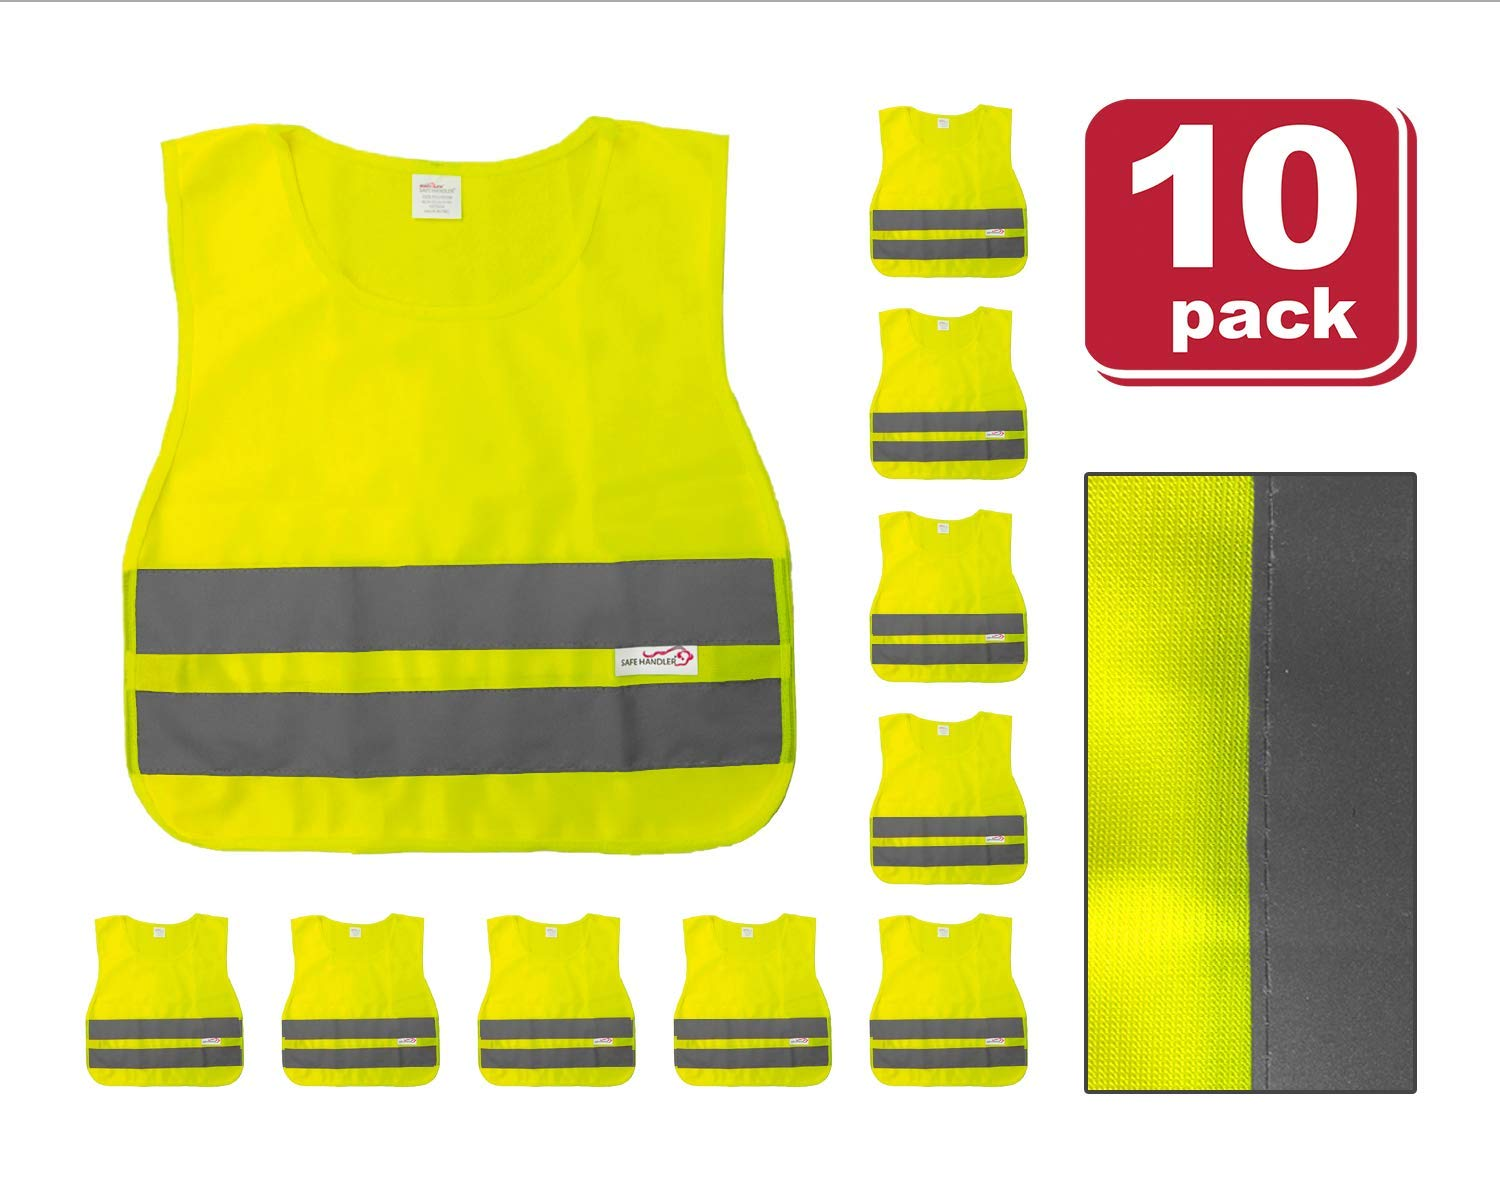 SAFE HANDLER Child Reflective Safety Vest | Lightweight and breathable, bright colors for child public safety, 100% polyester, Yellow, Medium, 10 PACK